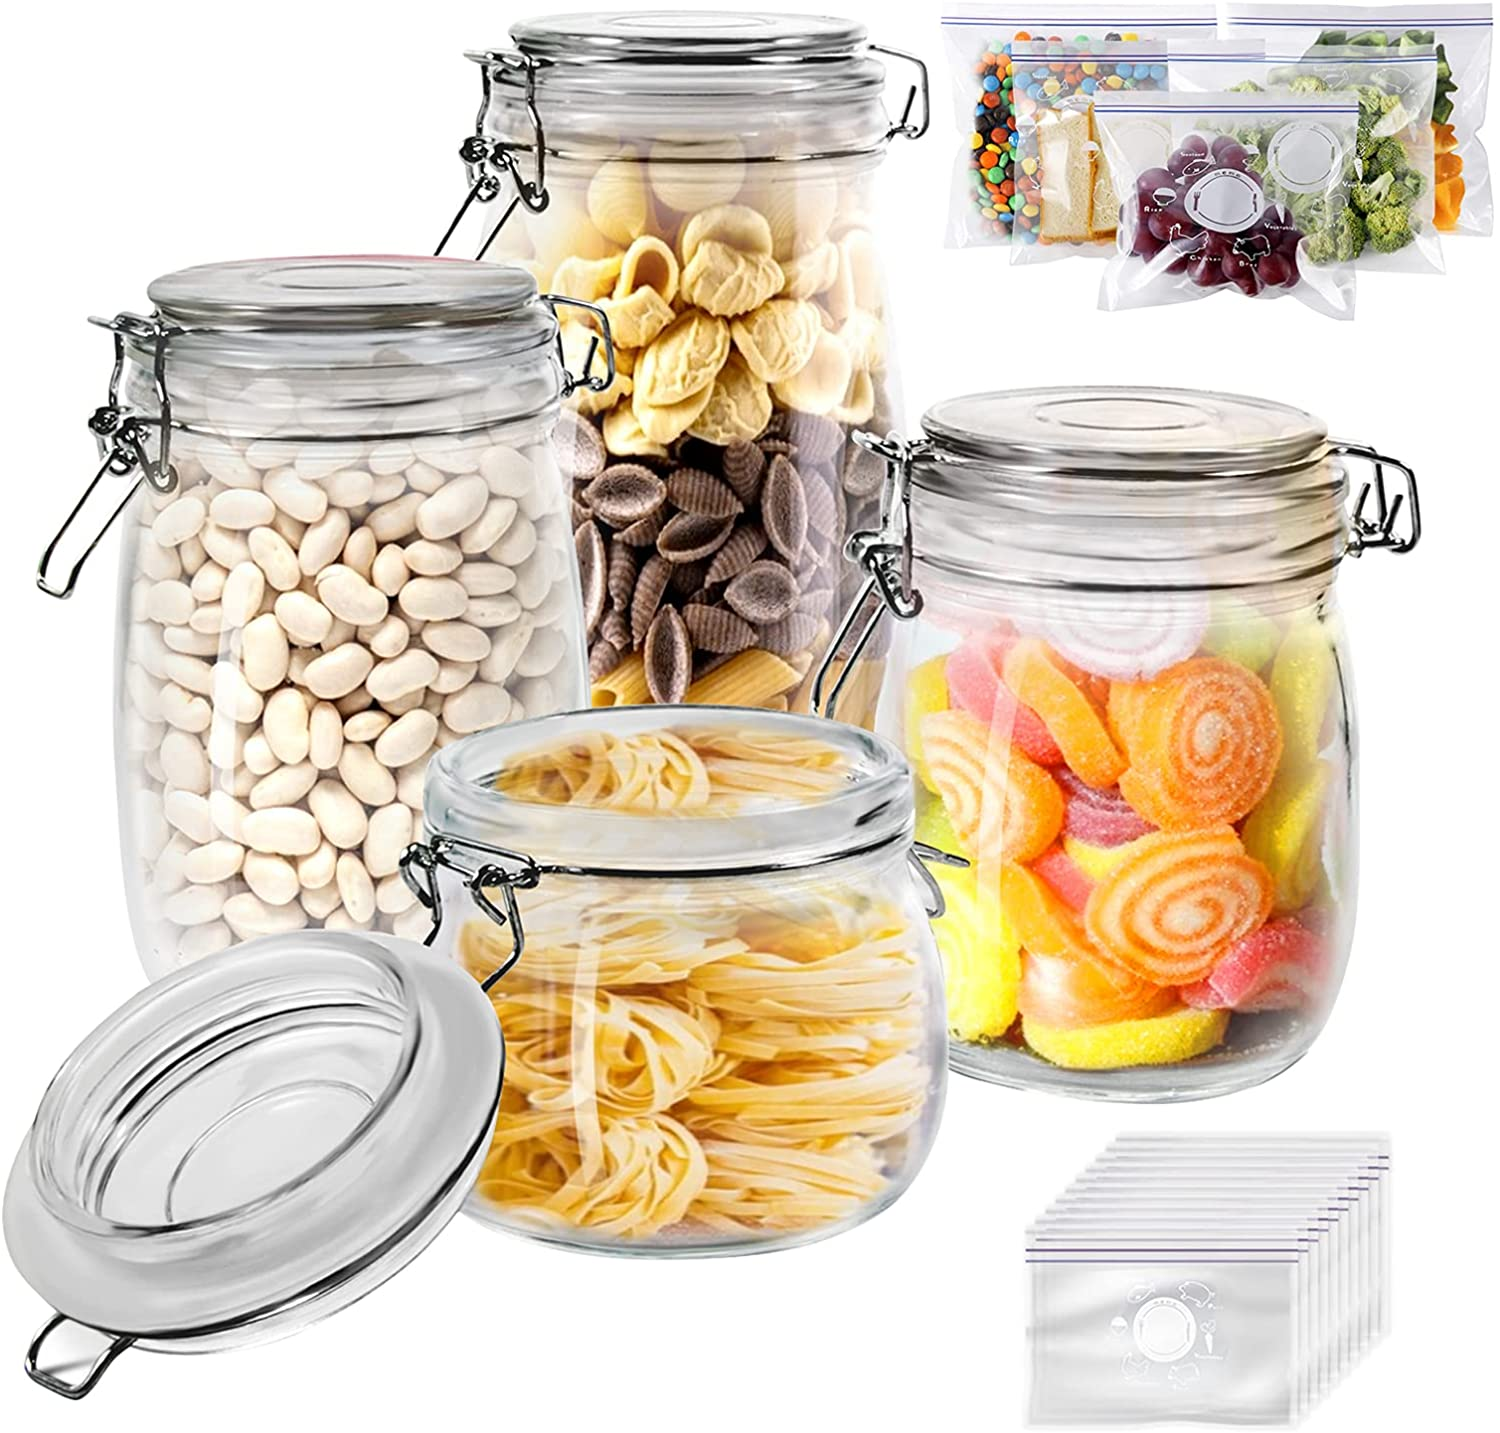 Glass Jars Set 4 Pieces 70% OFF Outlet discount with St Lids Airtight Preserving Kitchen